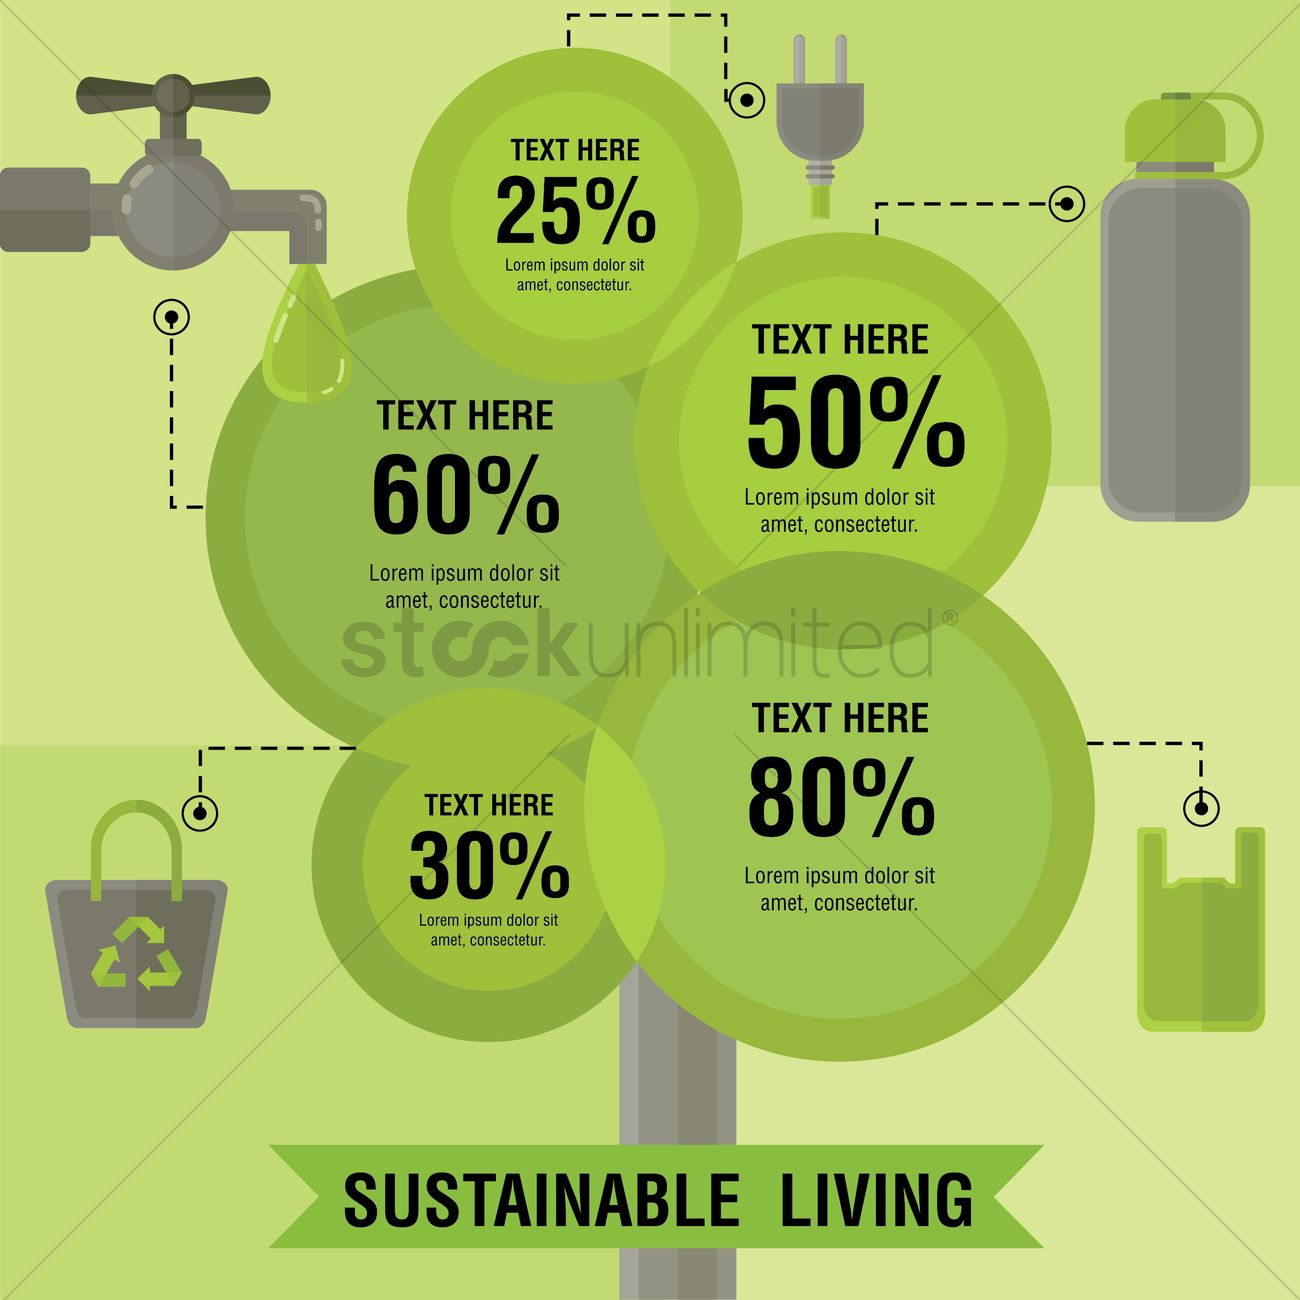 Infographic of sustainable living vector image 1261611 for Ideas for sustainable living